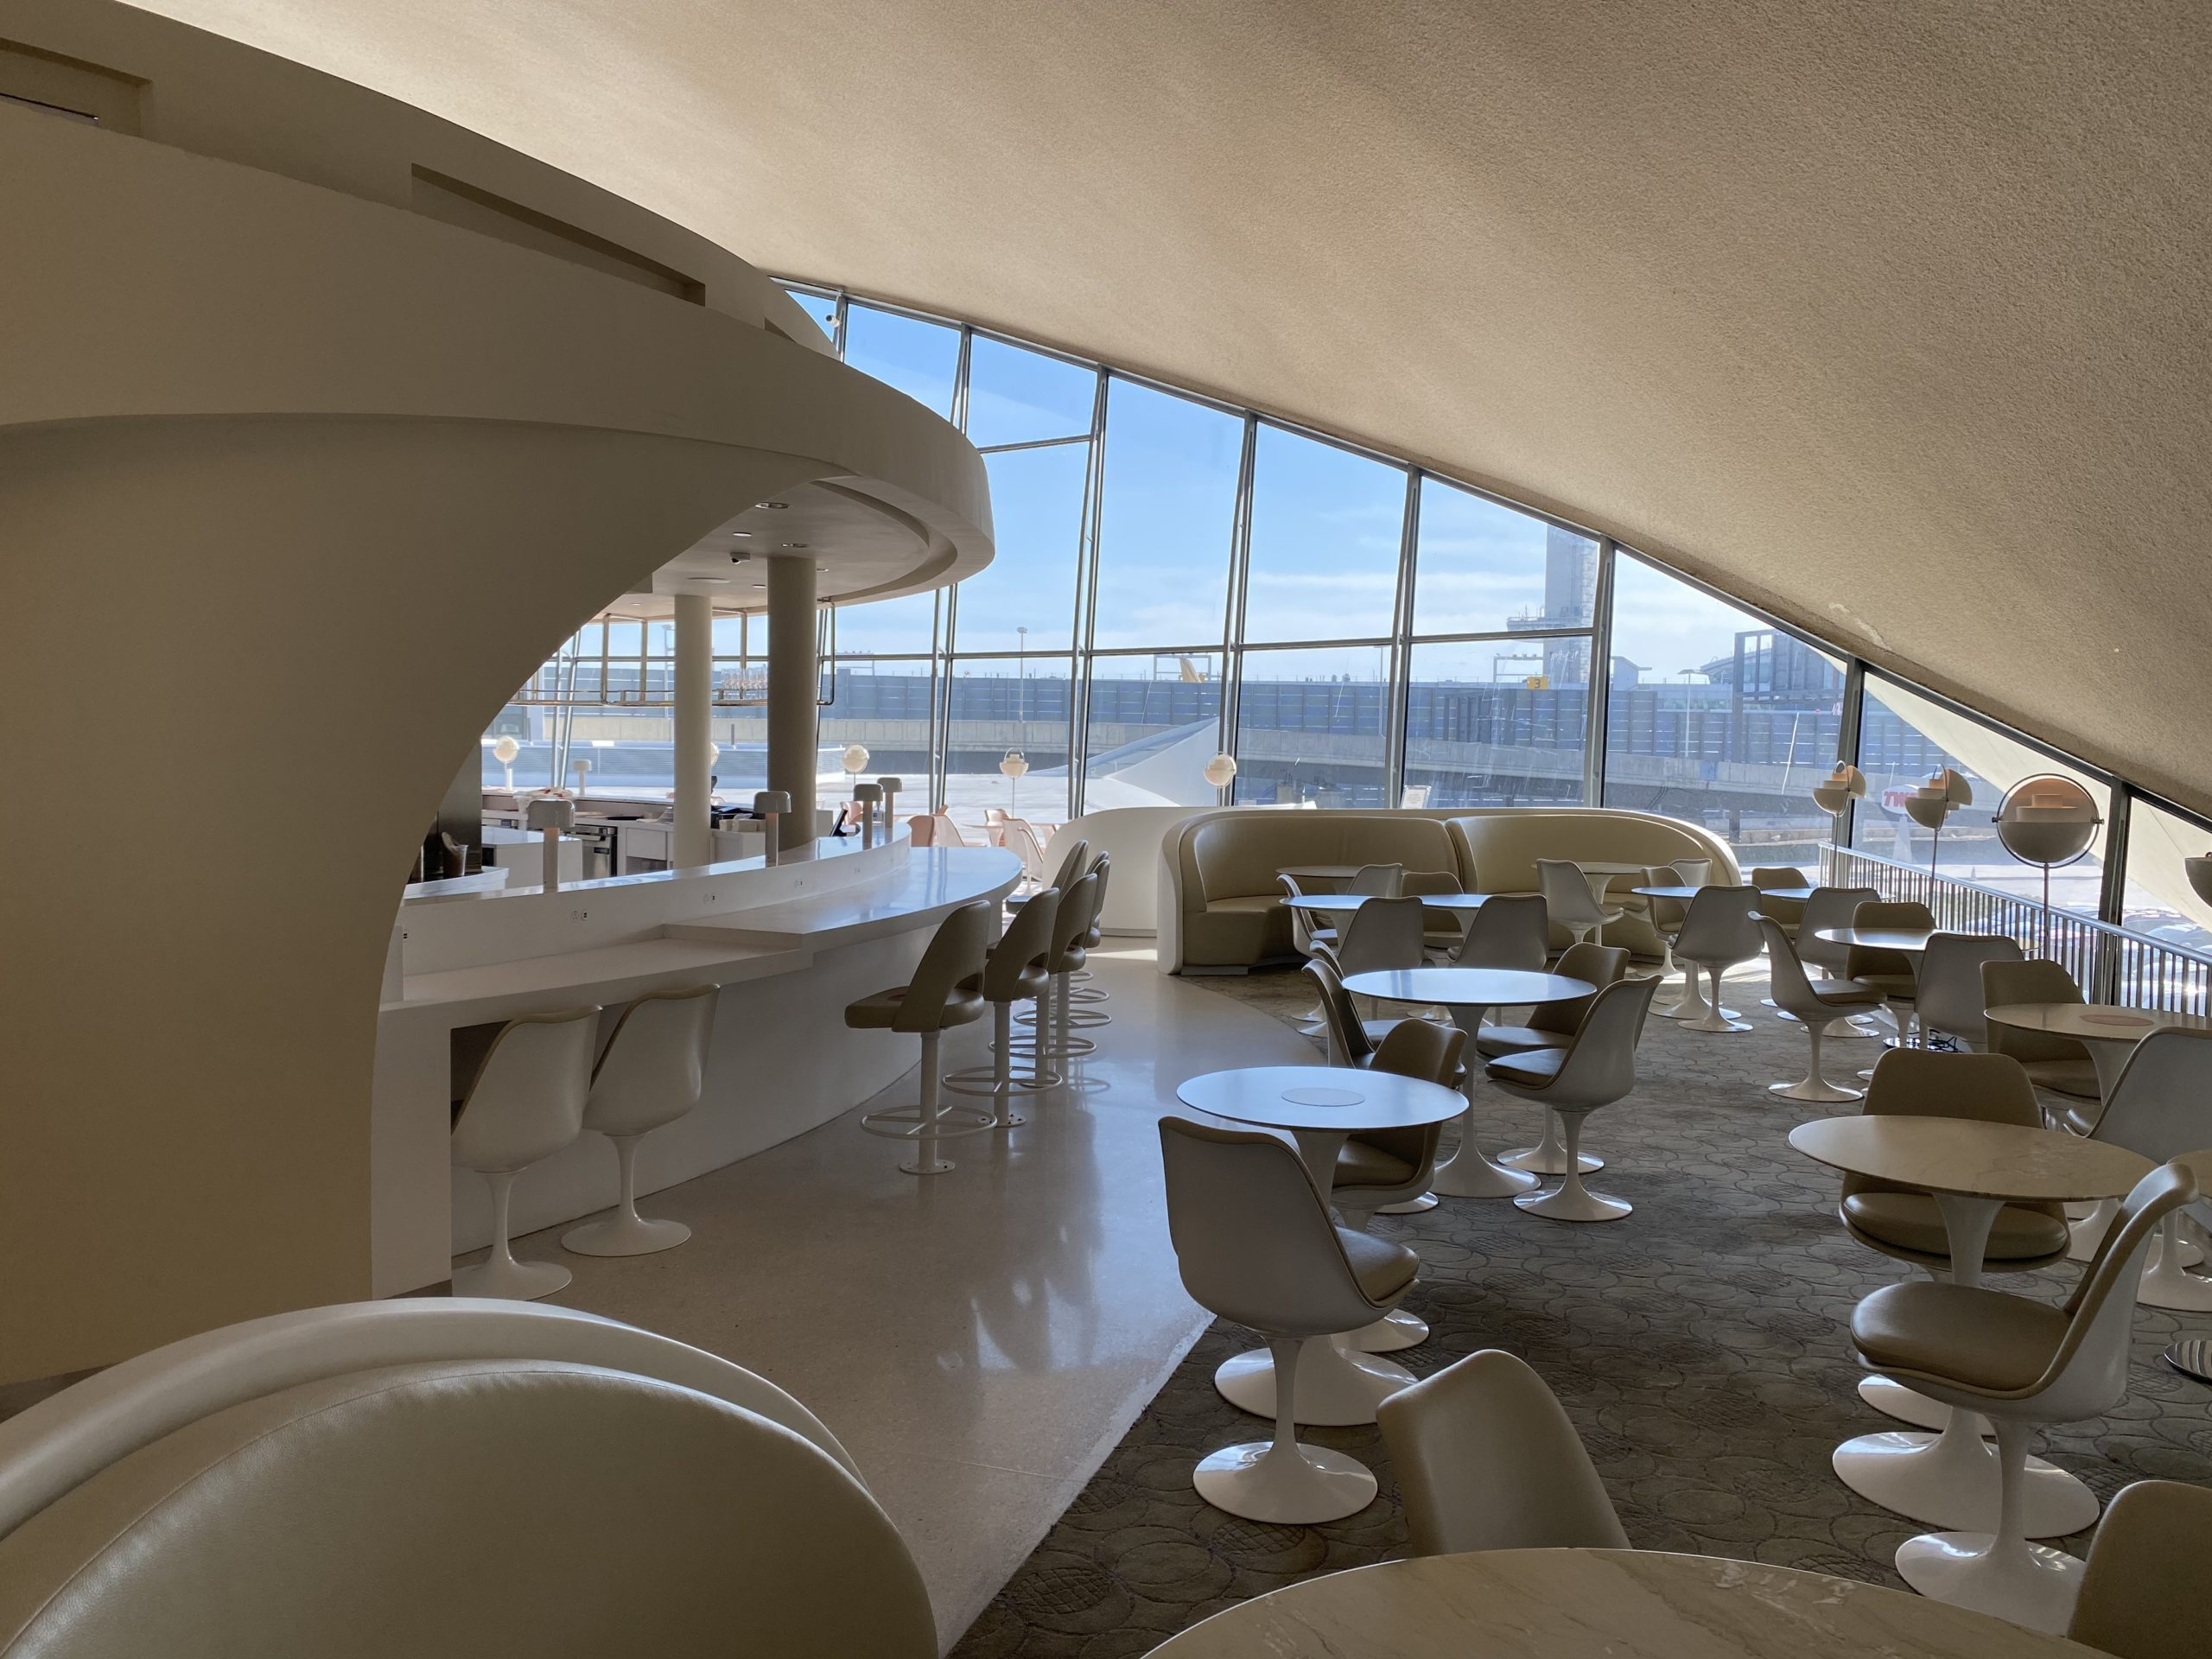 twa hotel paris cafe